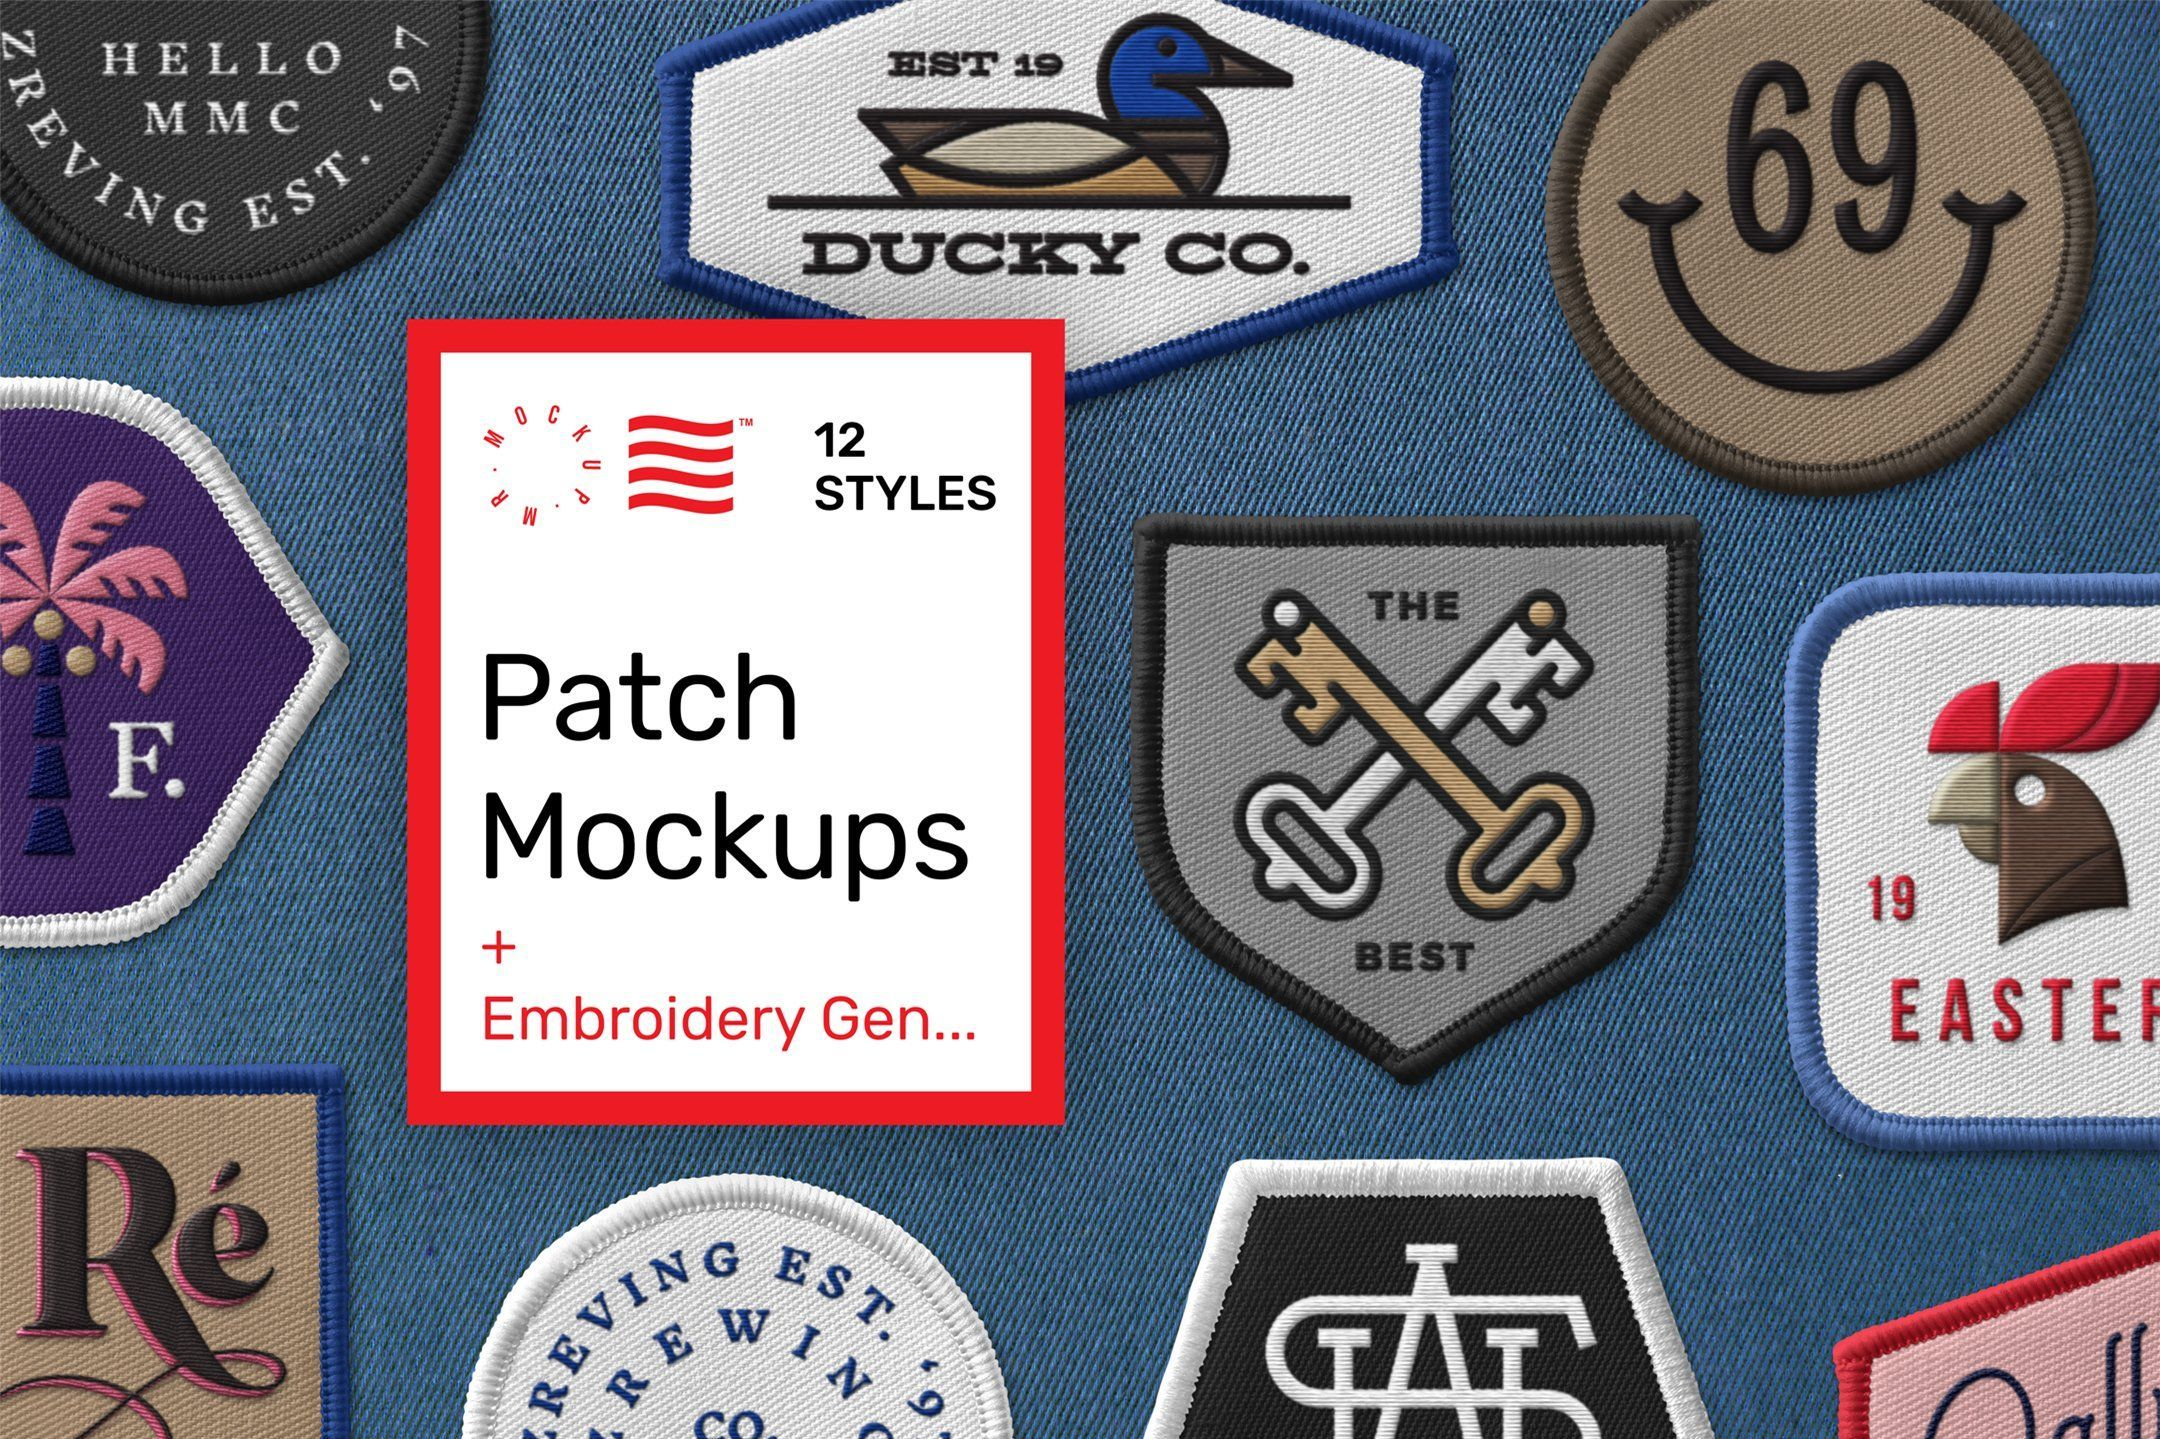 Patch Mockups Embroidery Generator Pin Logo Branding Mockups Embroidered Patches